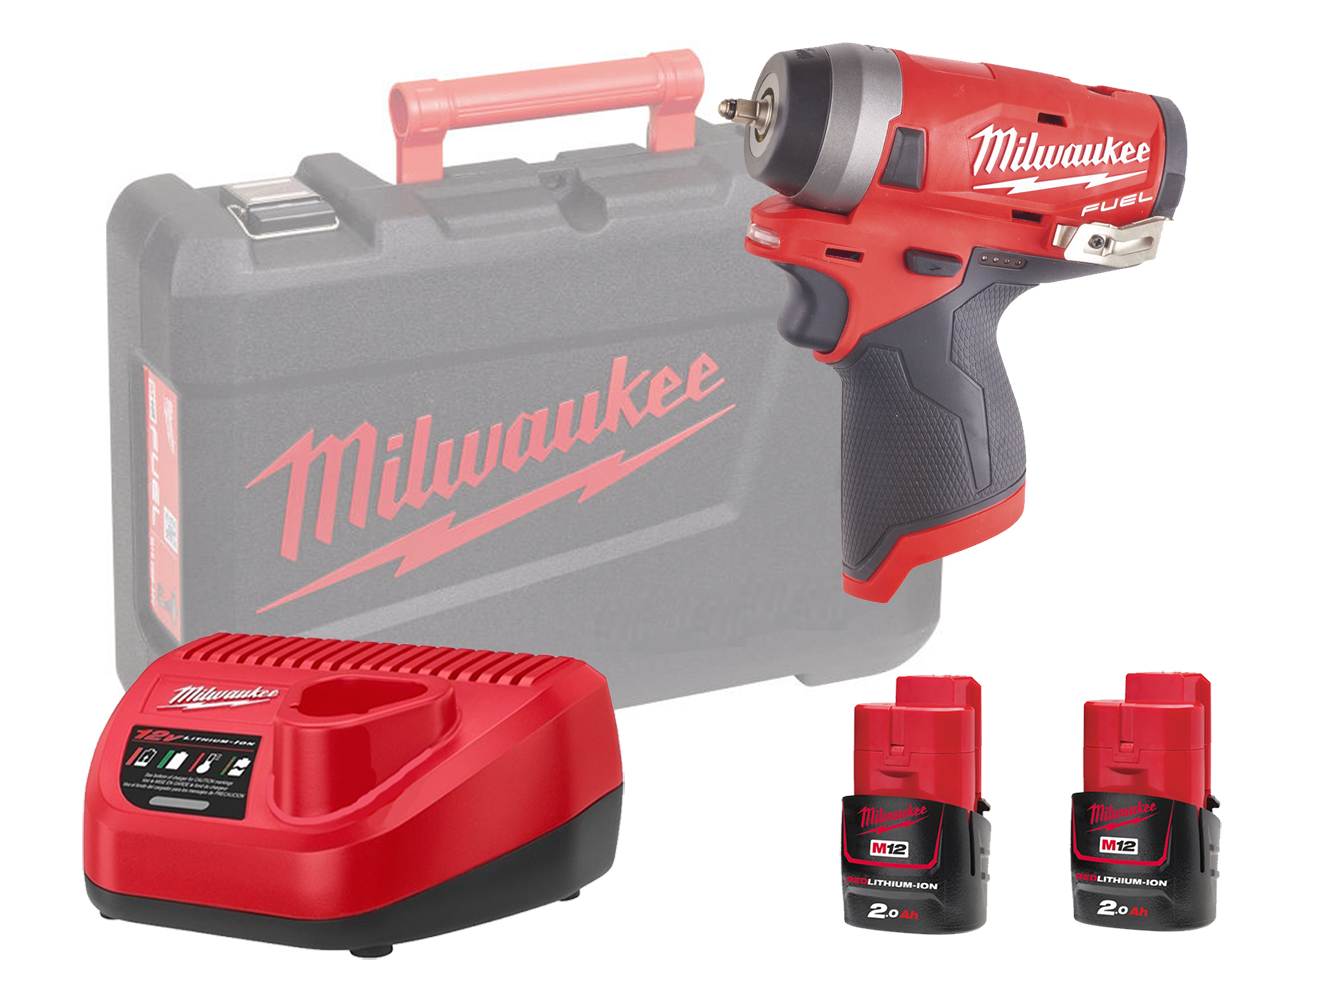 "MILWAUKEE 12V FUEL COMPACT IMPACT WRENCH 1/4"" - M12FIW14 - 2.0AH PACK"